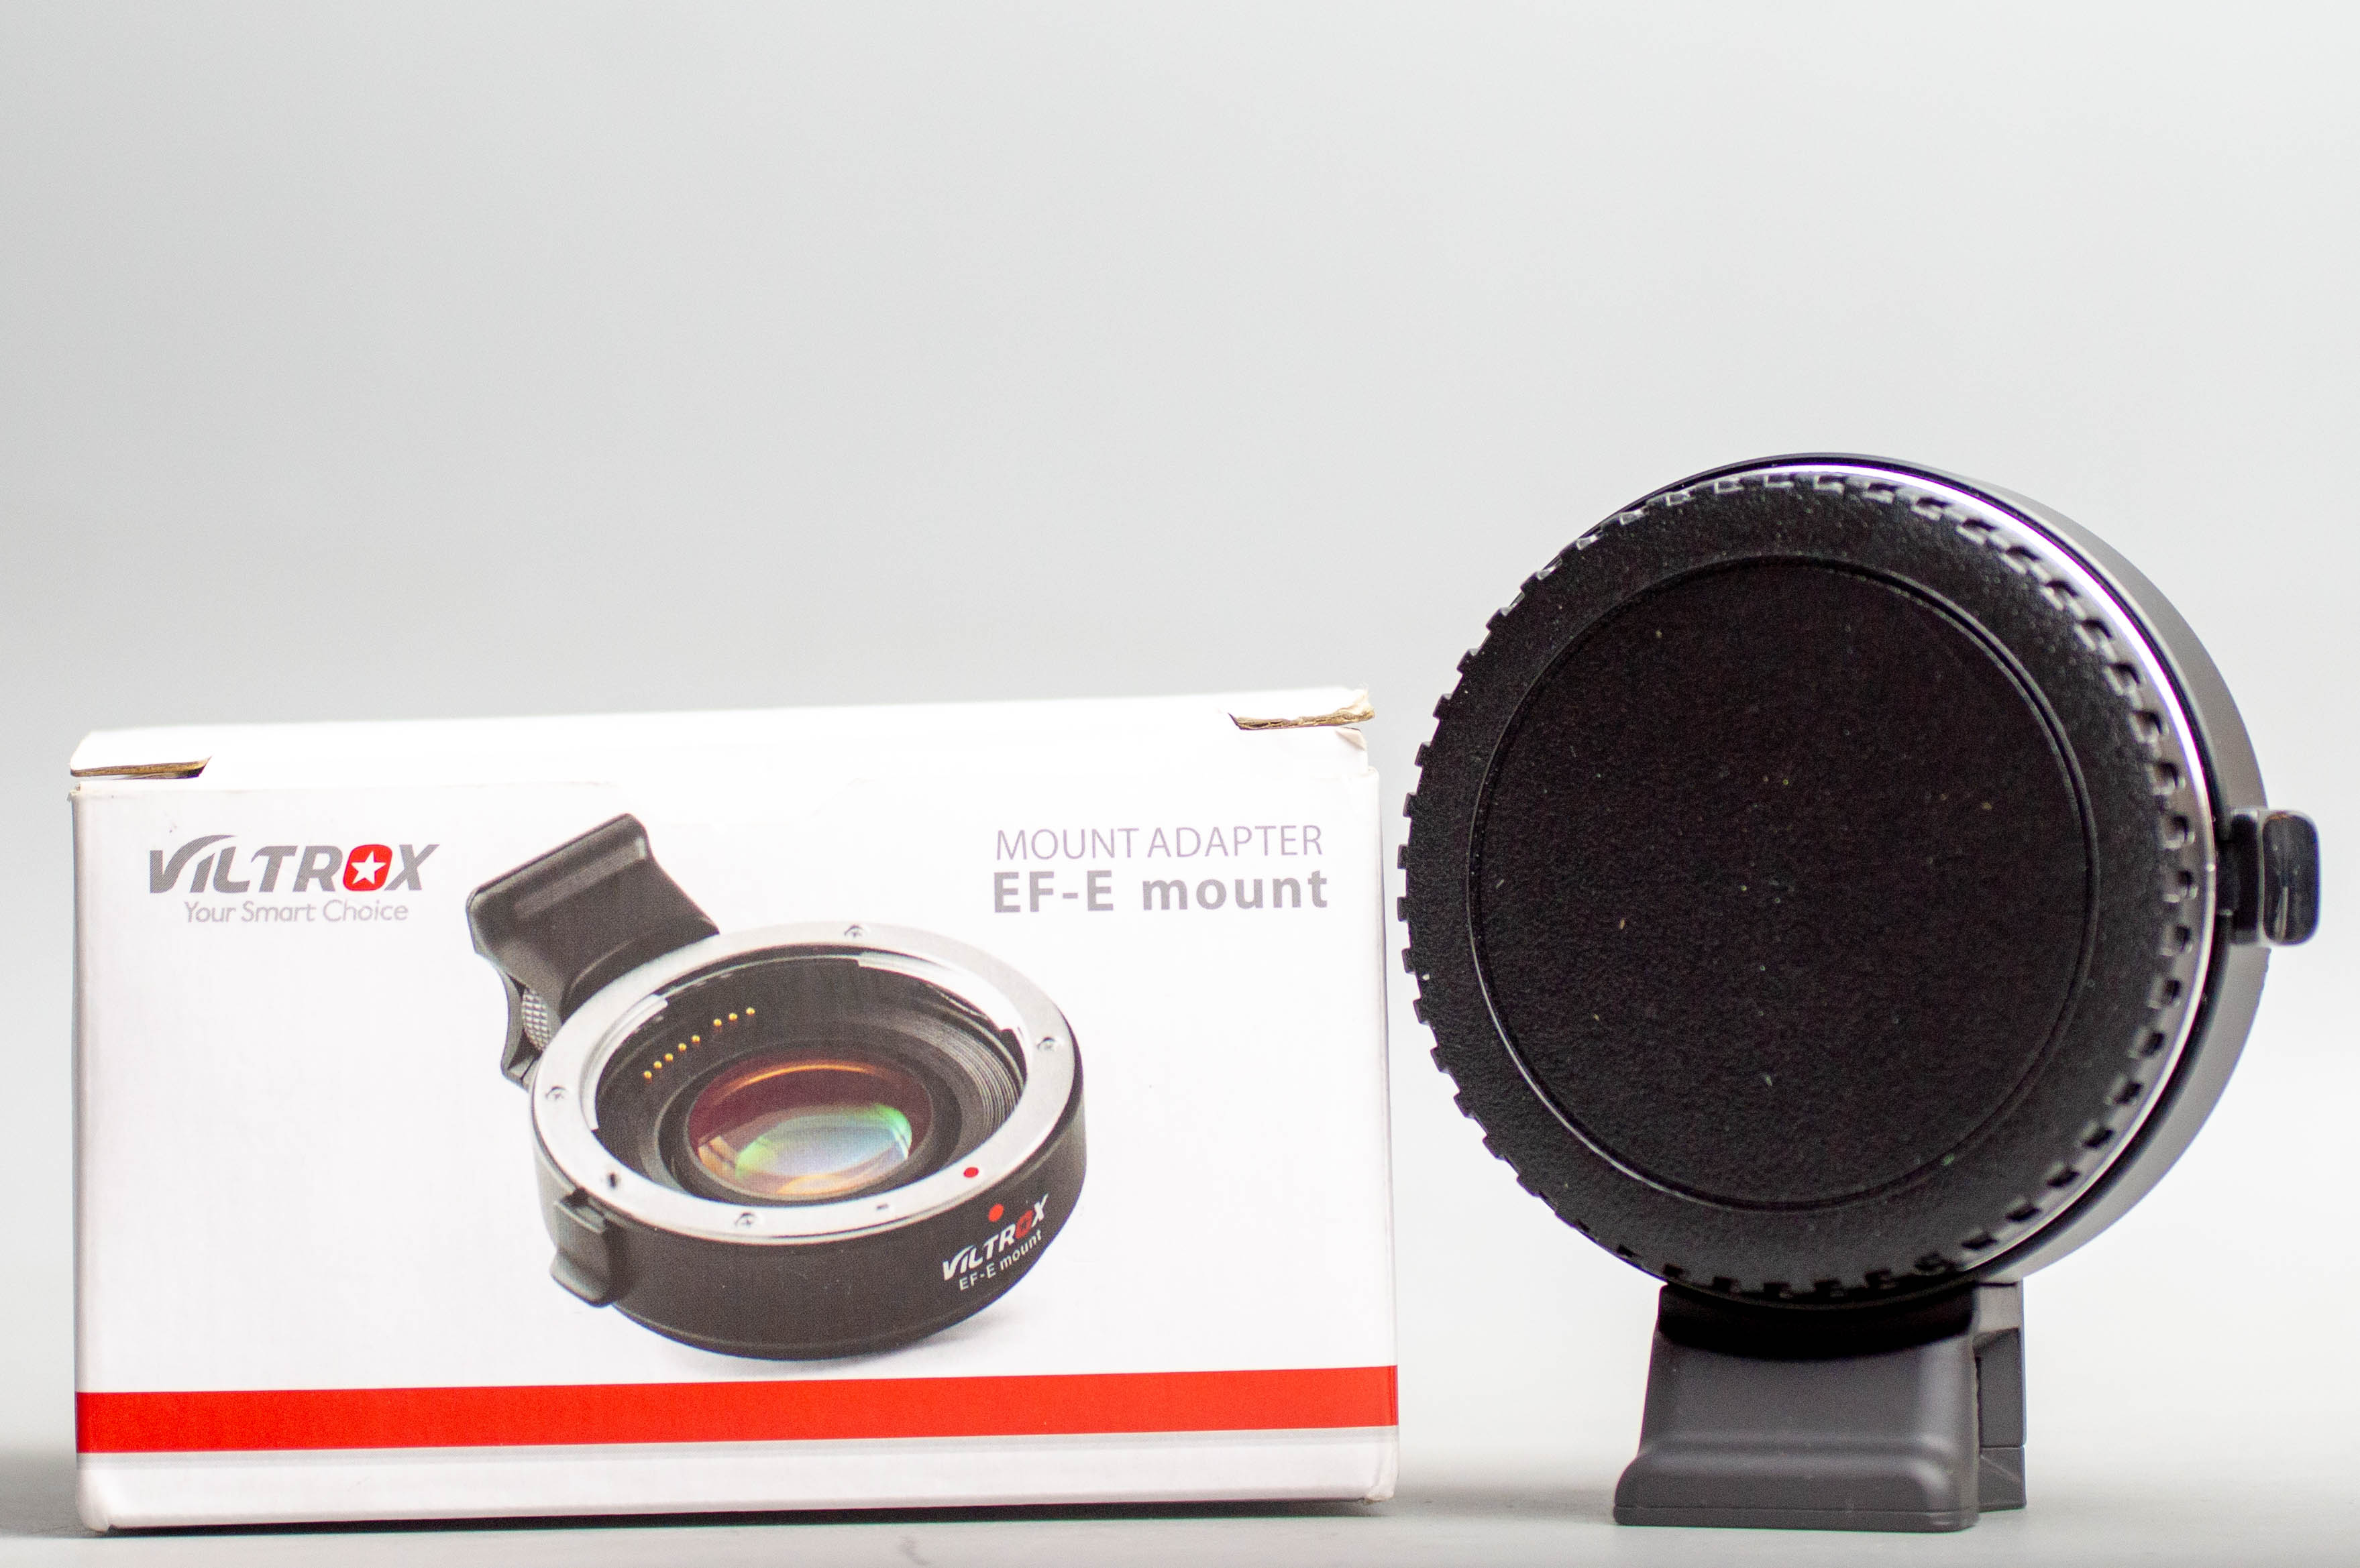 ngam-chuyen-viltrox-ef-e-af-focal-reducer-speed-booster-18460-canon-sony